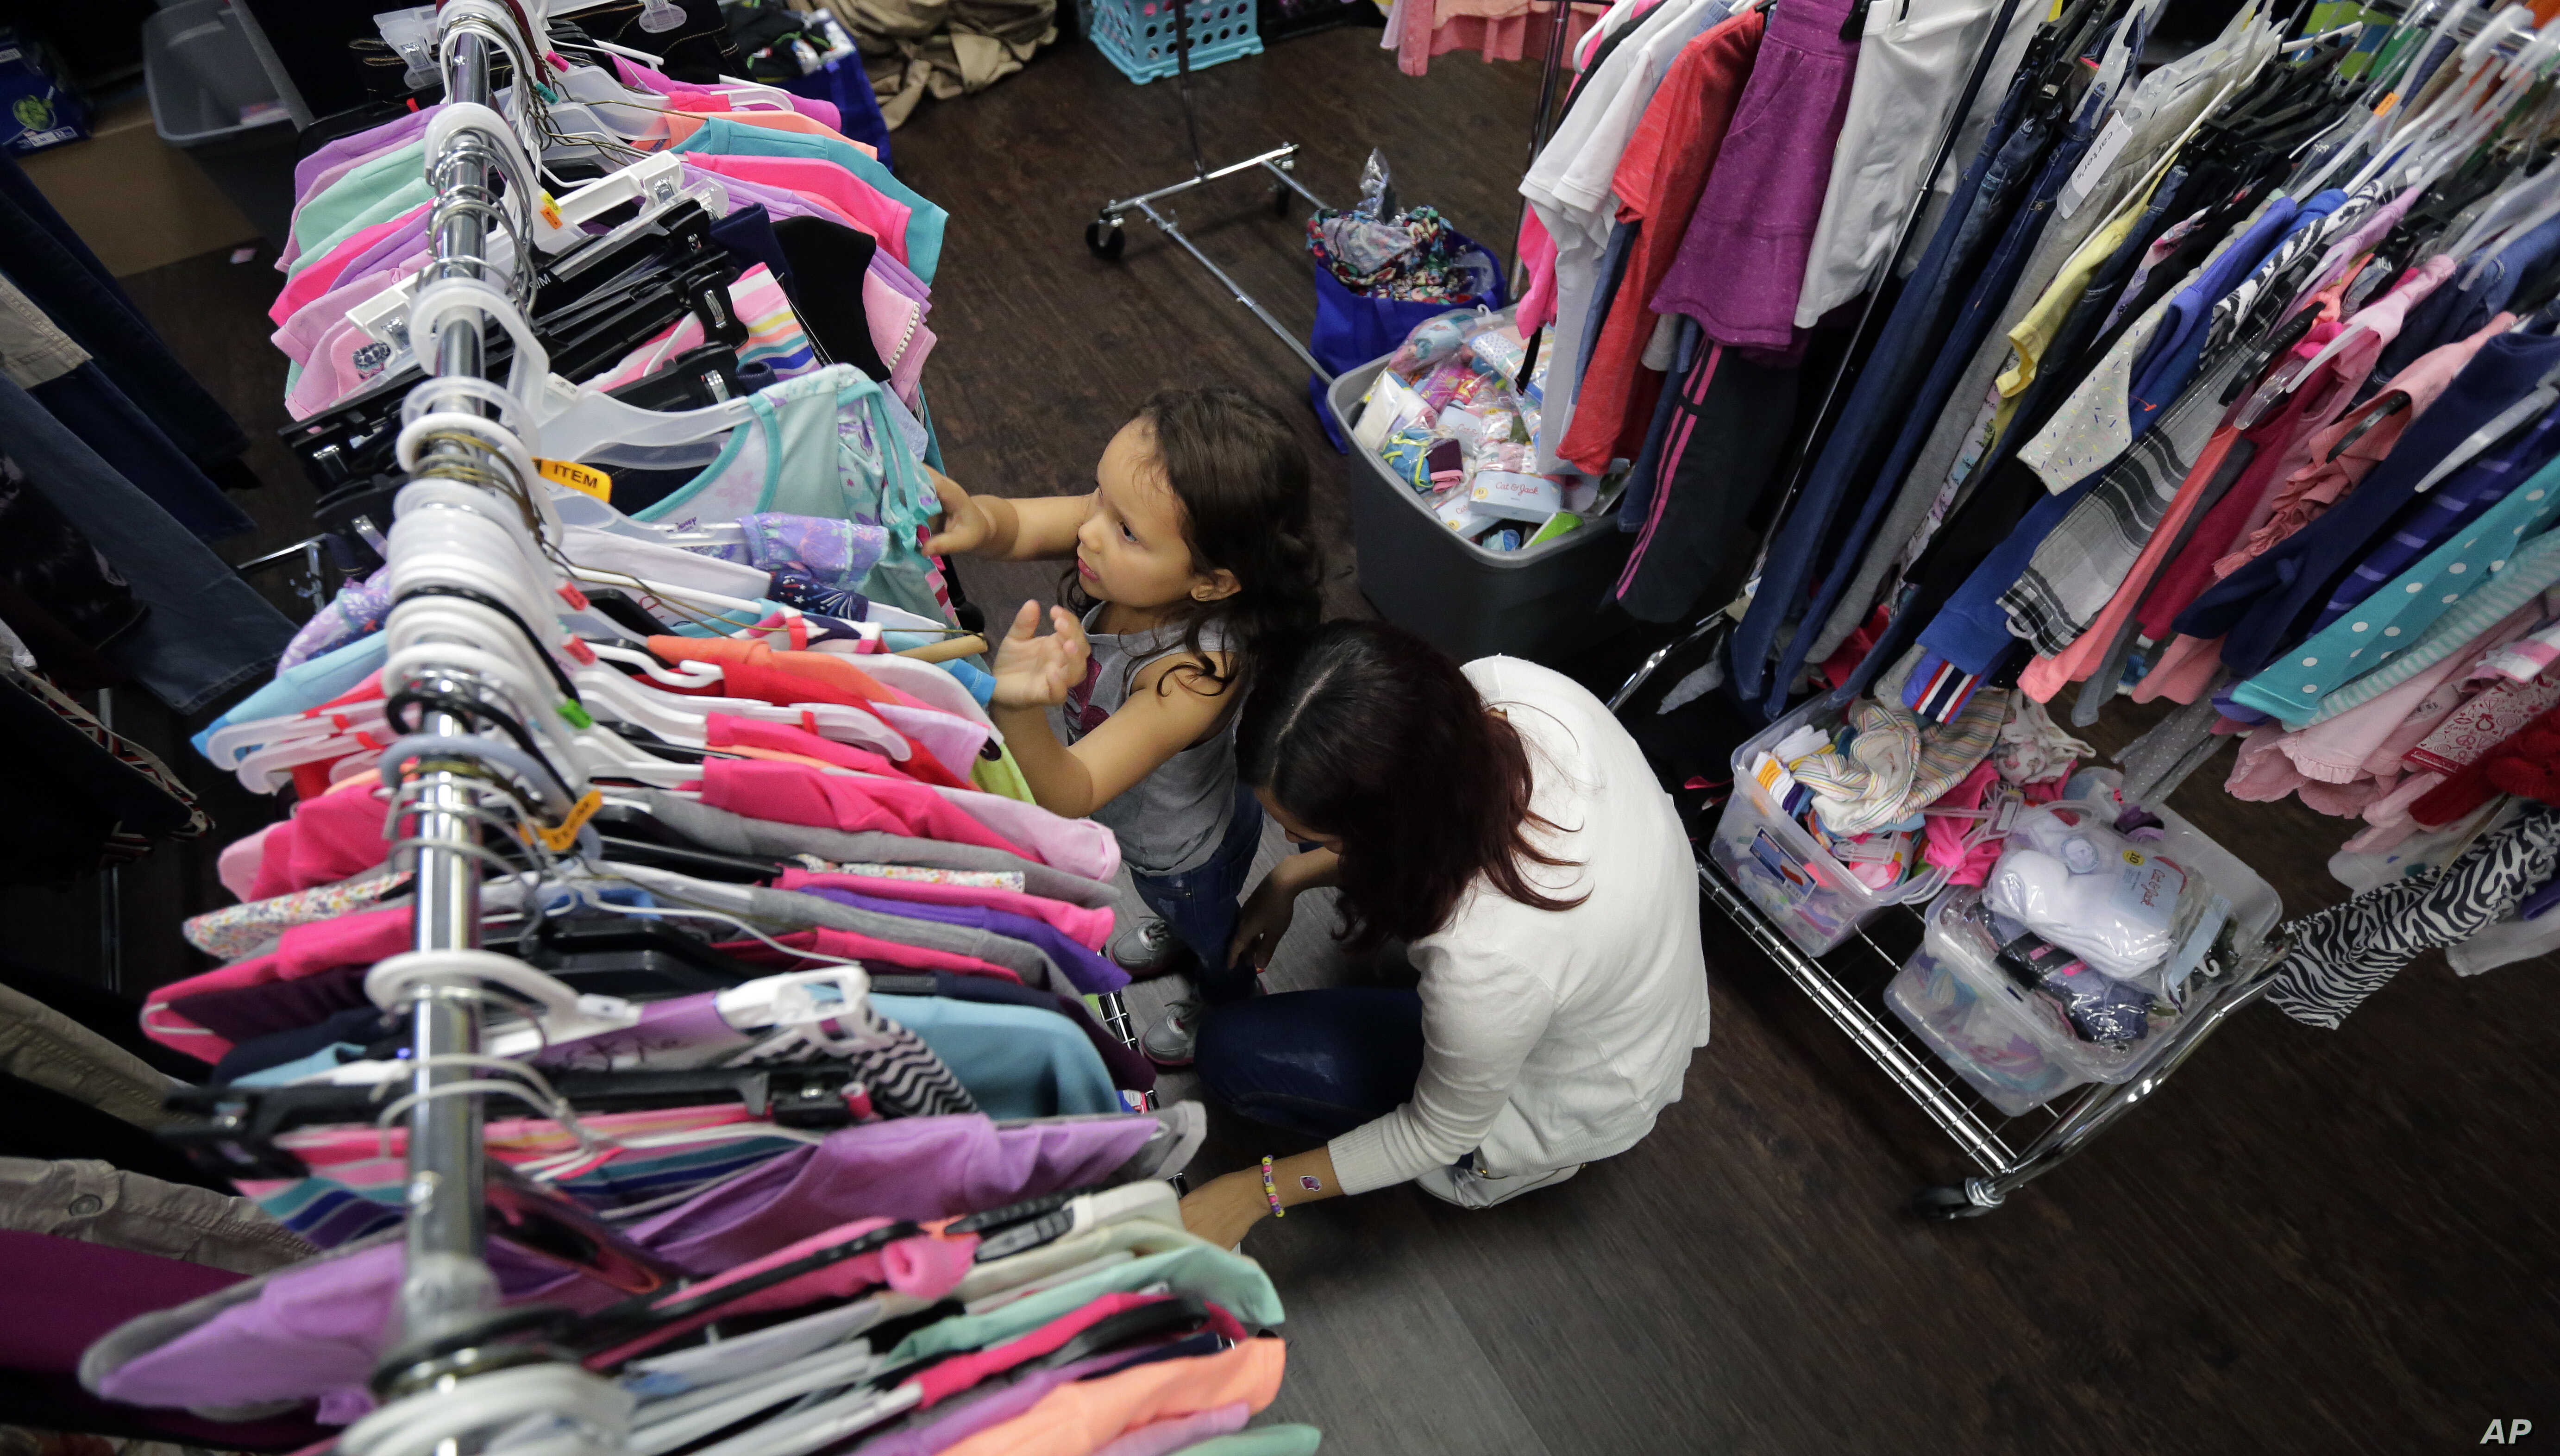 Immigrants seeking asylum, Natalia Oliveira da Silva and her daughter, Sara, 5, look through donated clothing at a Catholic Charities facility, July 23, 2018, in San Antonio, Texas.